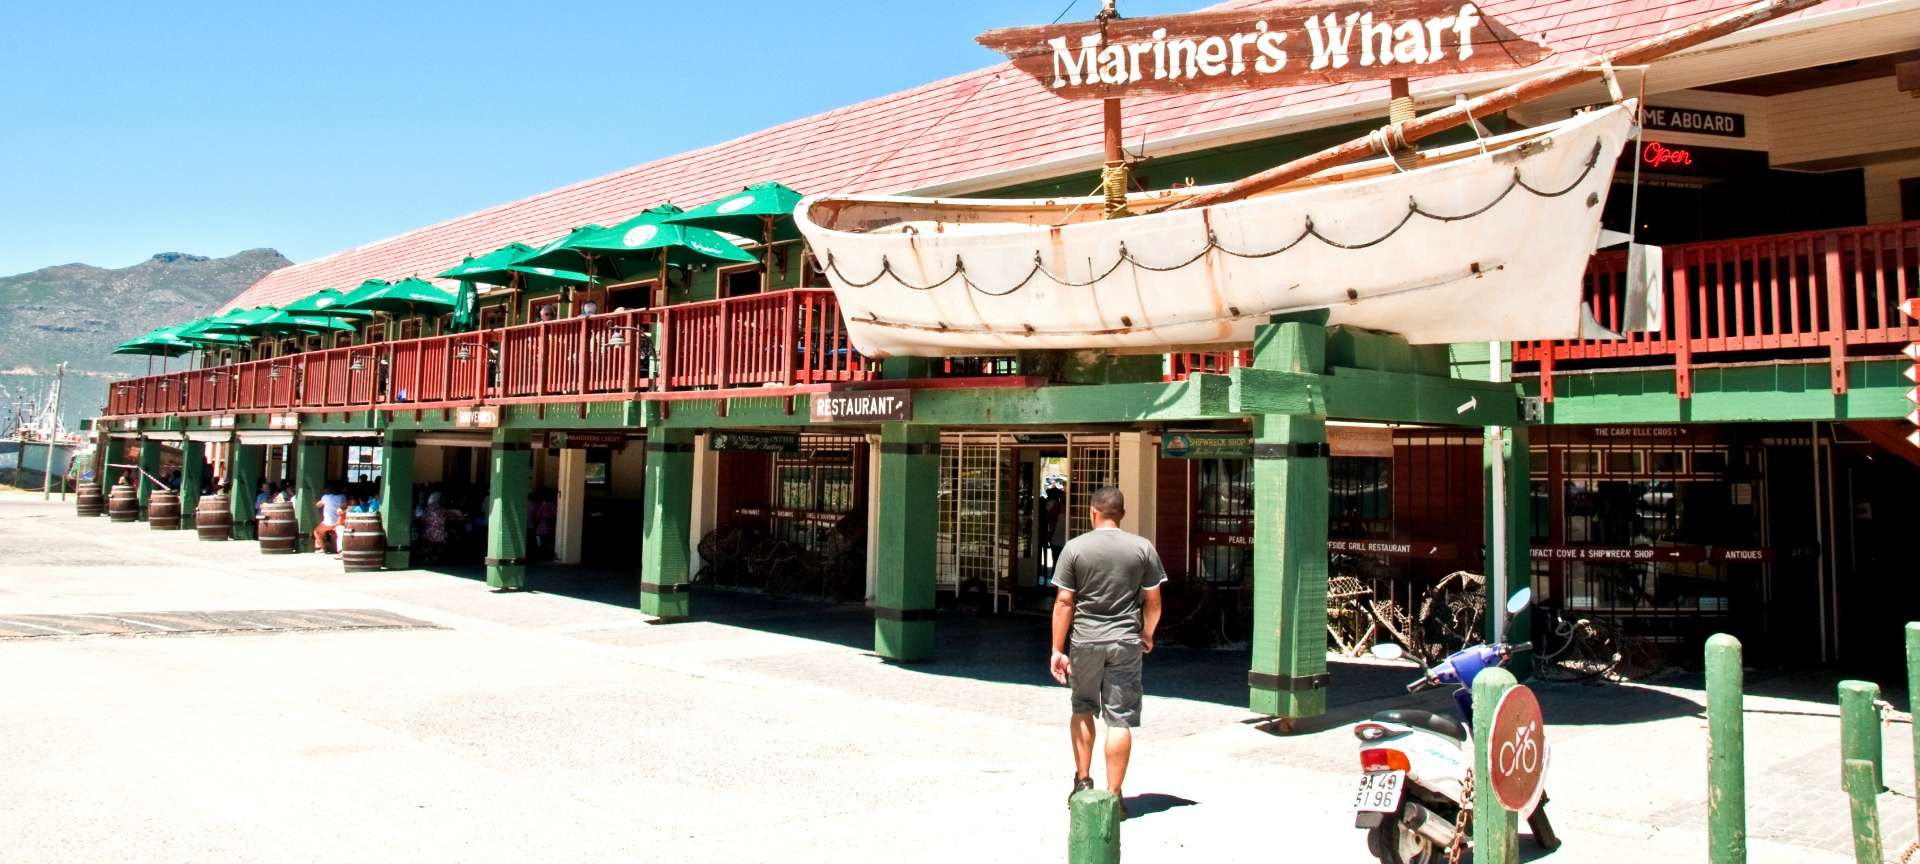 Mariners Wharf in Hout Bay is an institution - sure to be visited